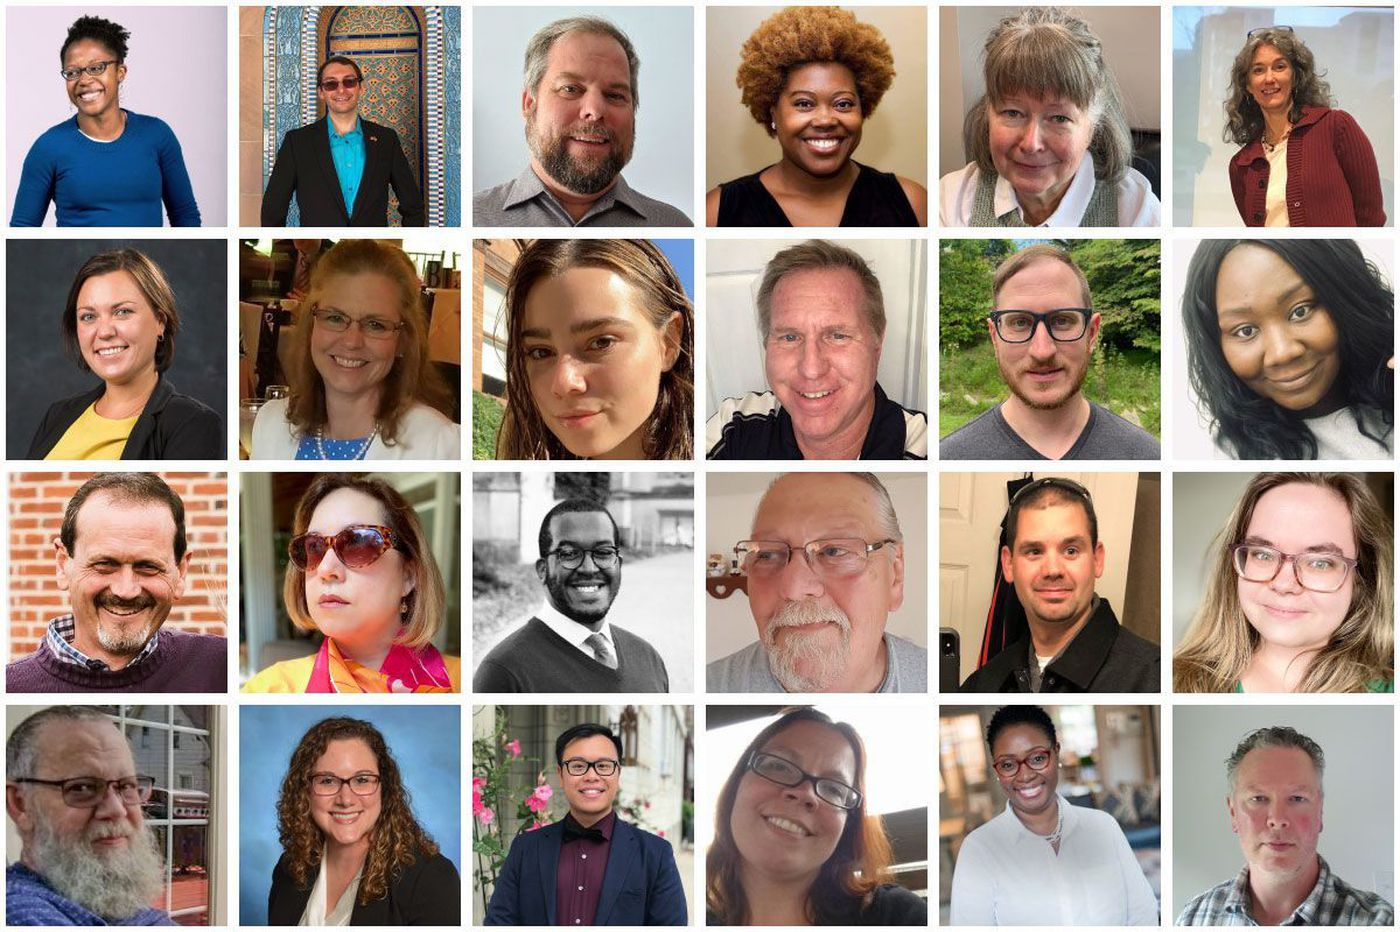 Meet 24 Pennsylvania voters who will help inform our 2020 election coverage